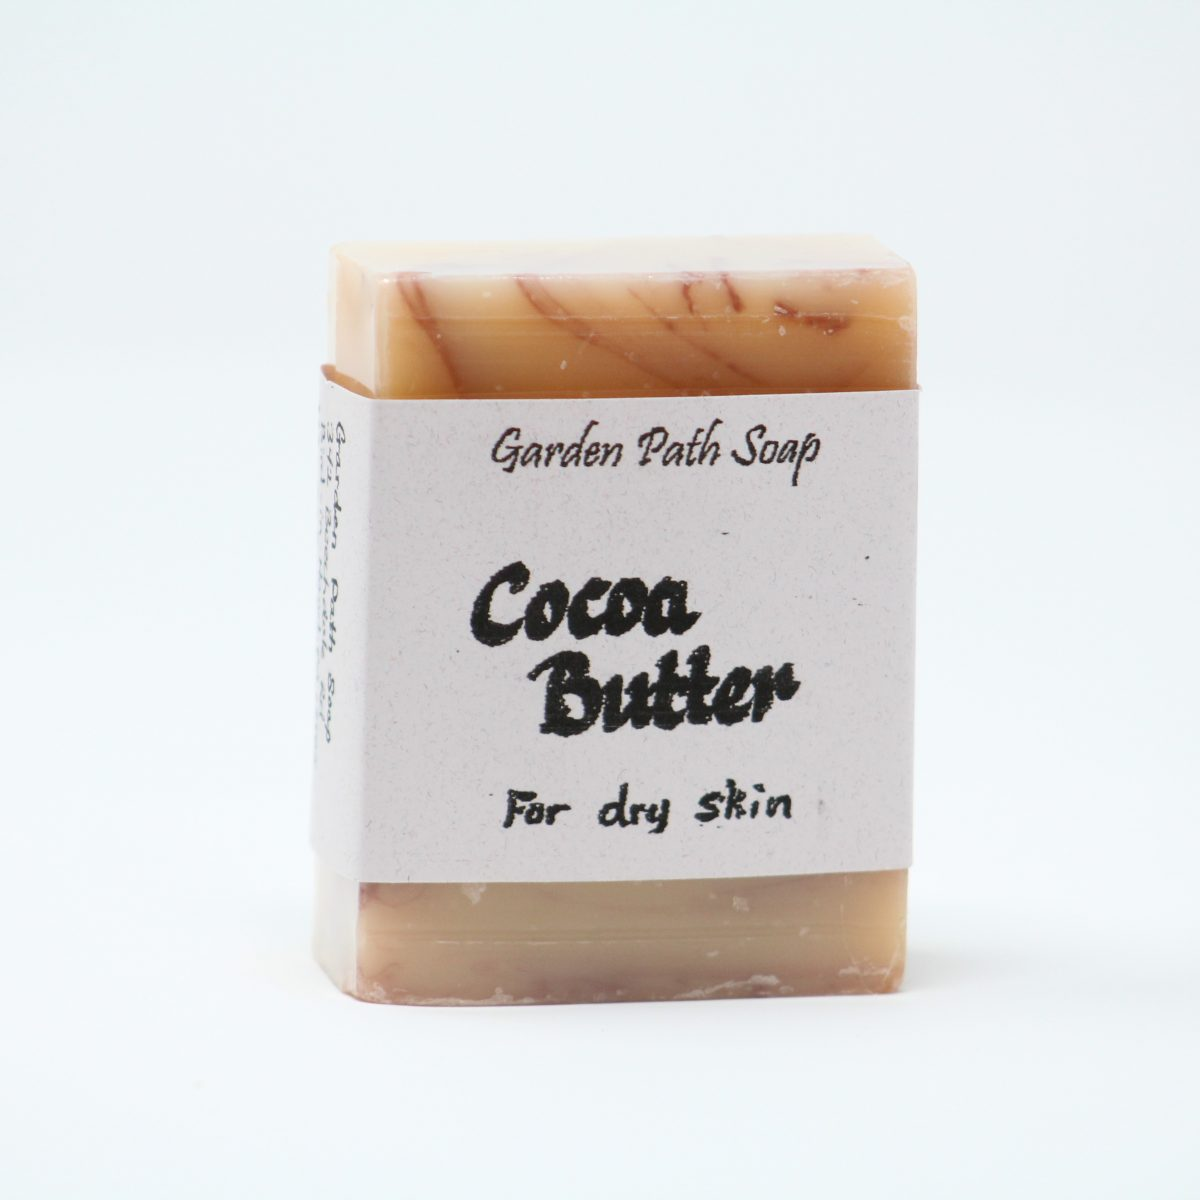 Cocoa Butter- Homemade Lye Soaps-Family Farm Handcrafts